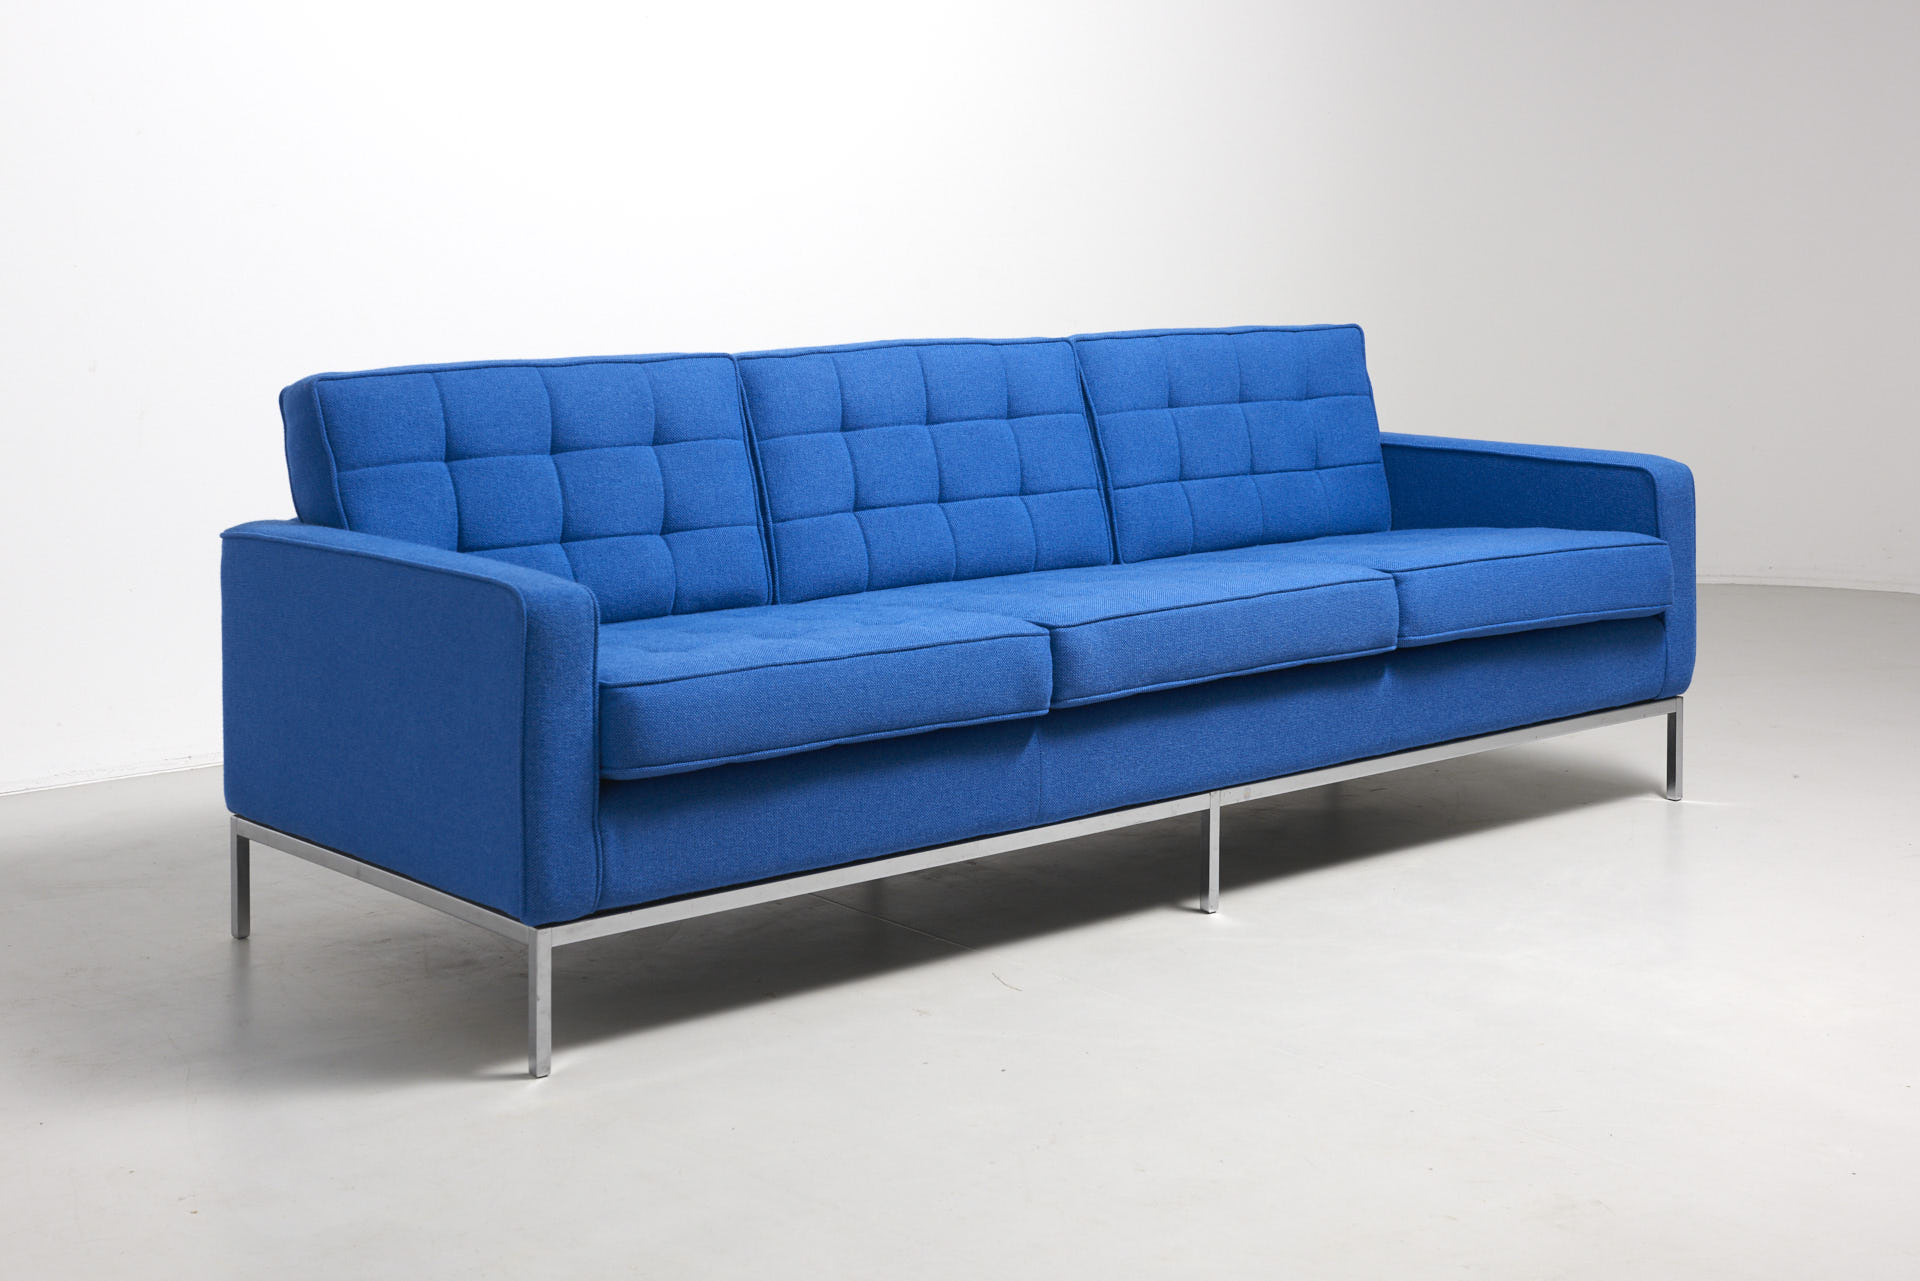 A 3 Seat Sofa Florence Knoll Archive Modest Furniture